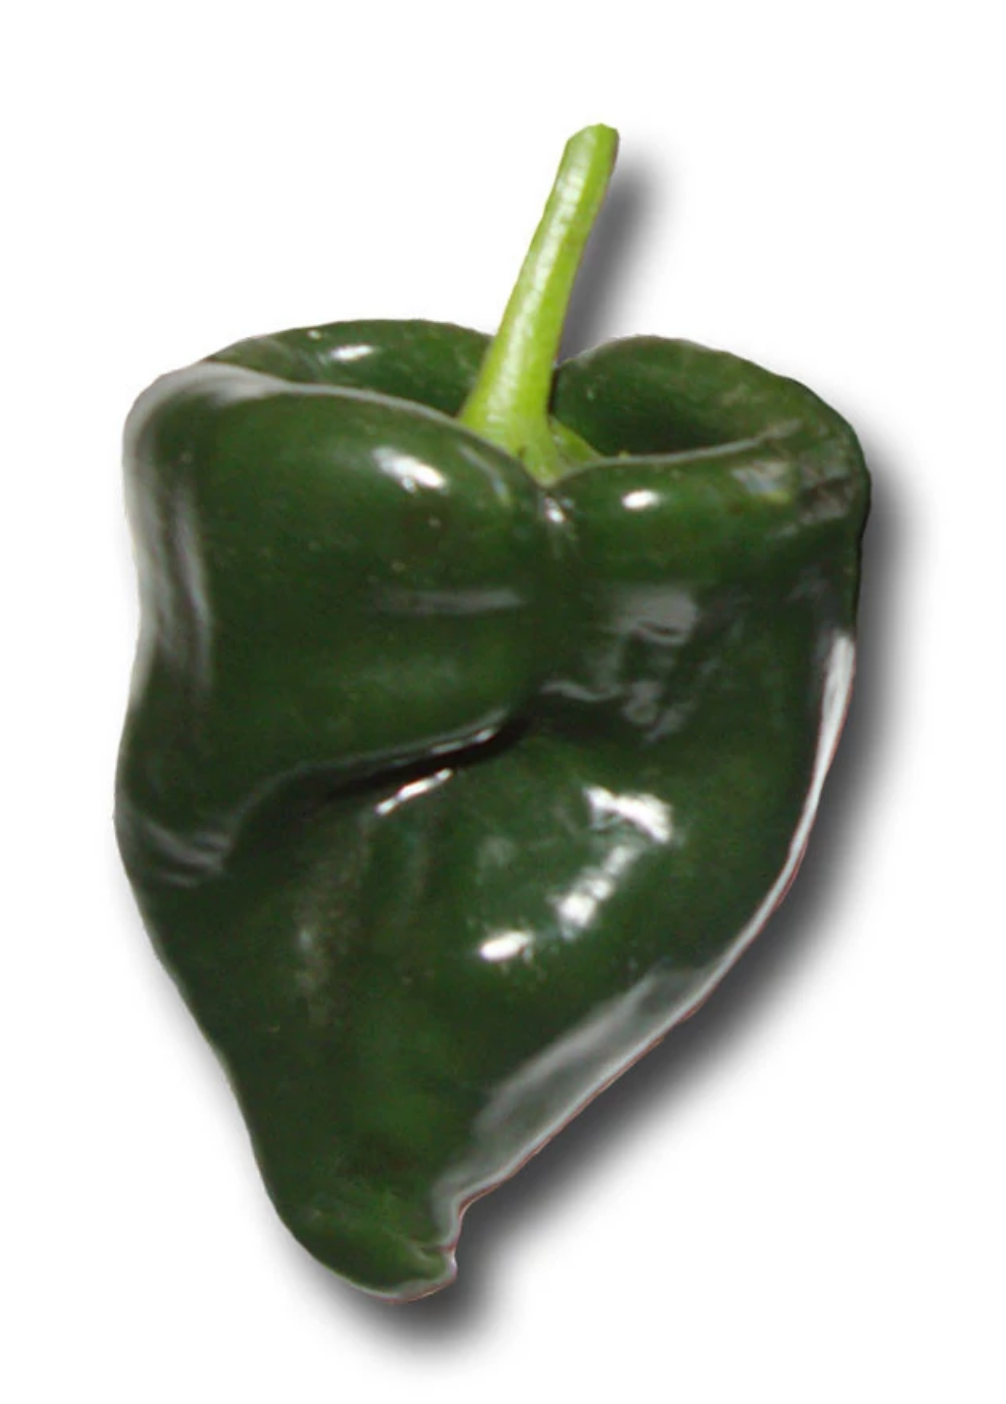 Poblano Pepper (perfect for an Aleppo Pepper Substitute)